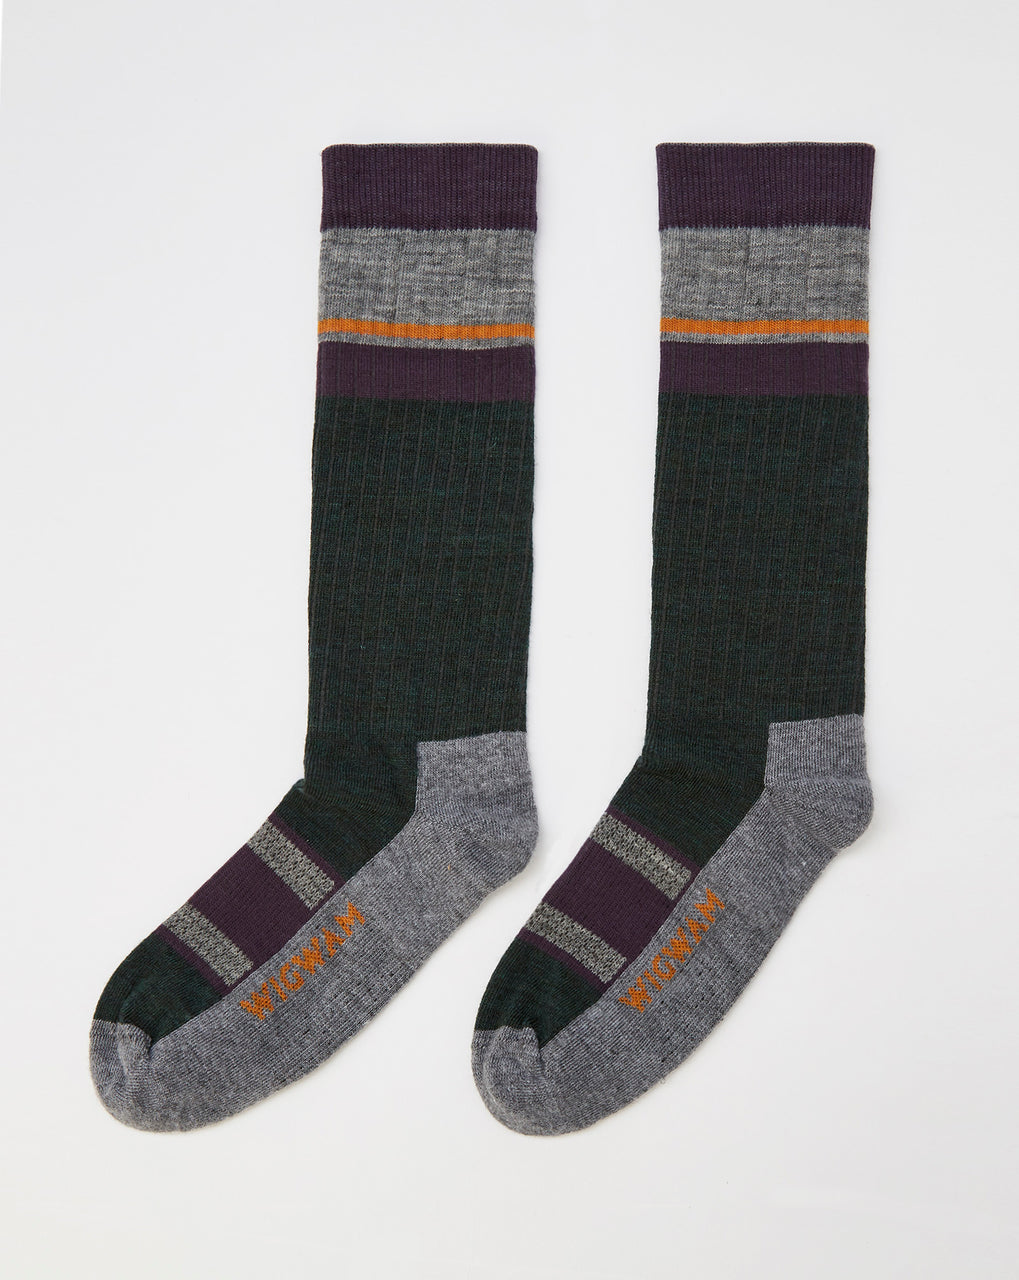 Wigwam Pikes Peak Pro Socks (June Bug)